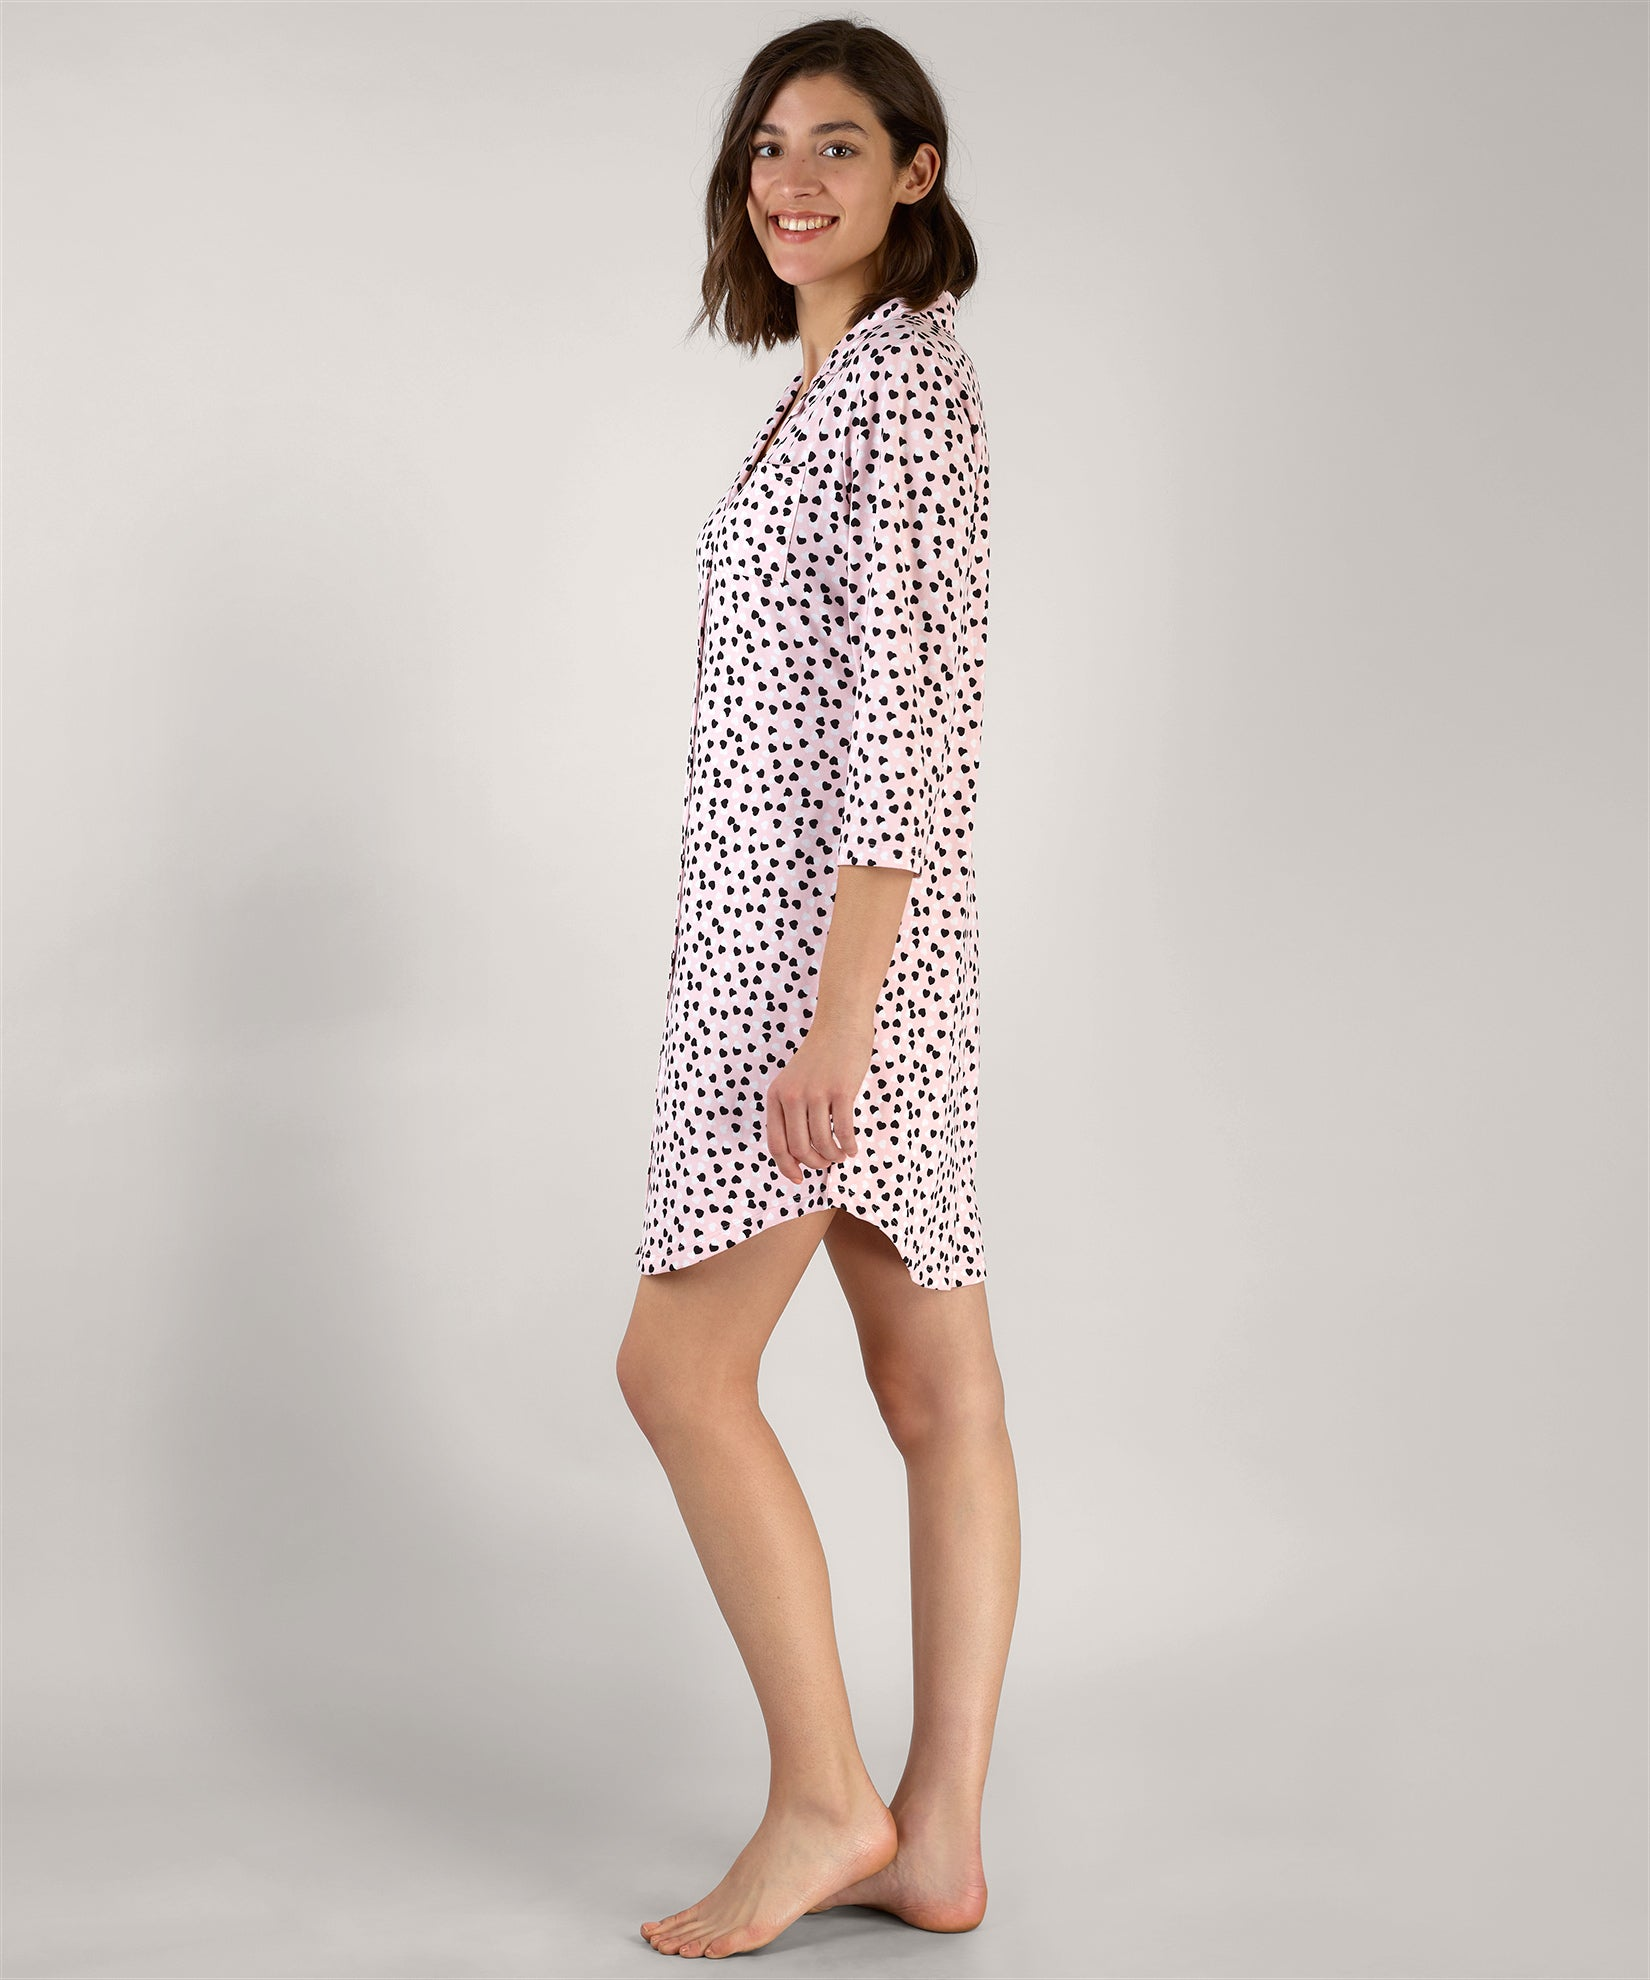 Warm Blush - Heart Confetti Nightshirt